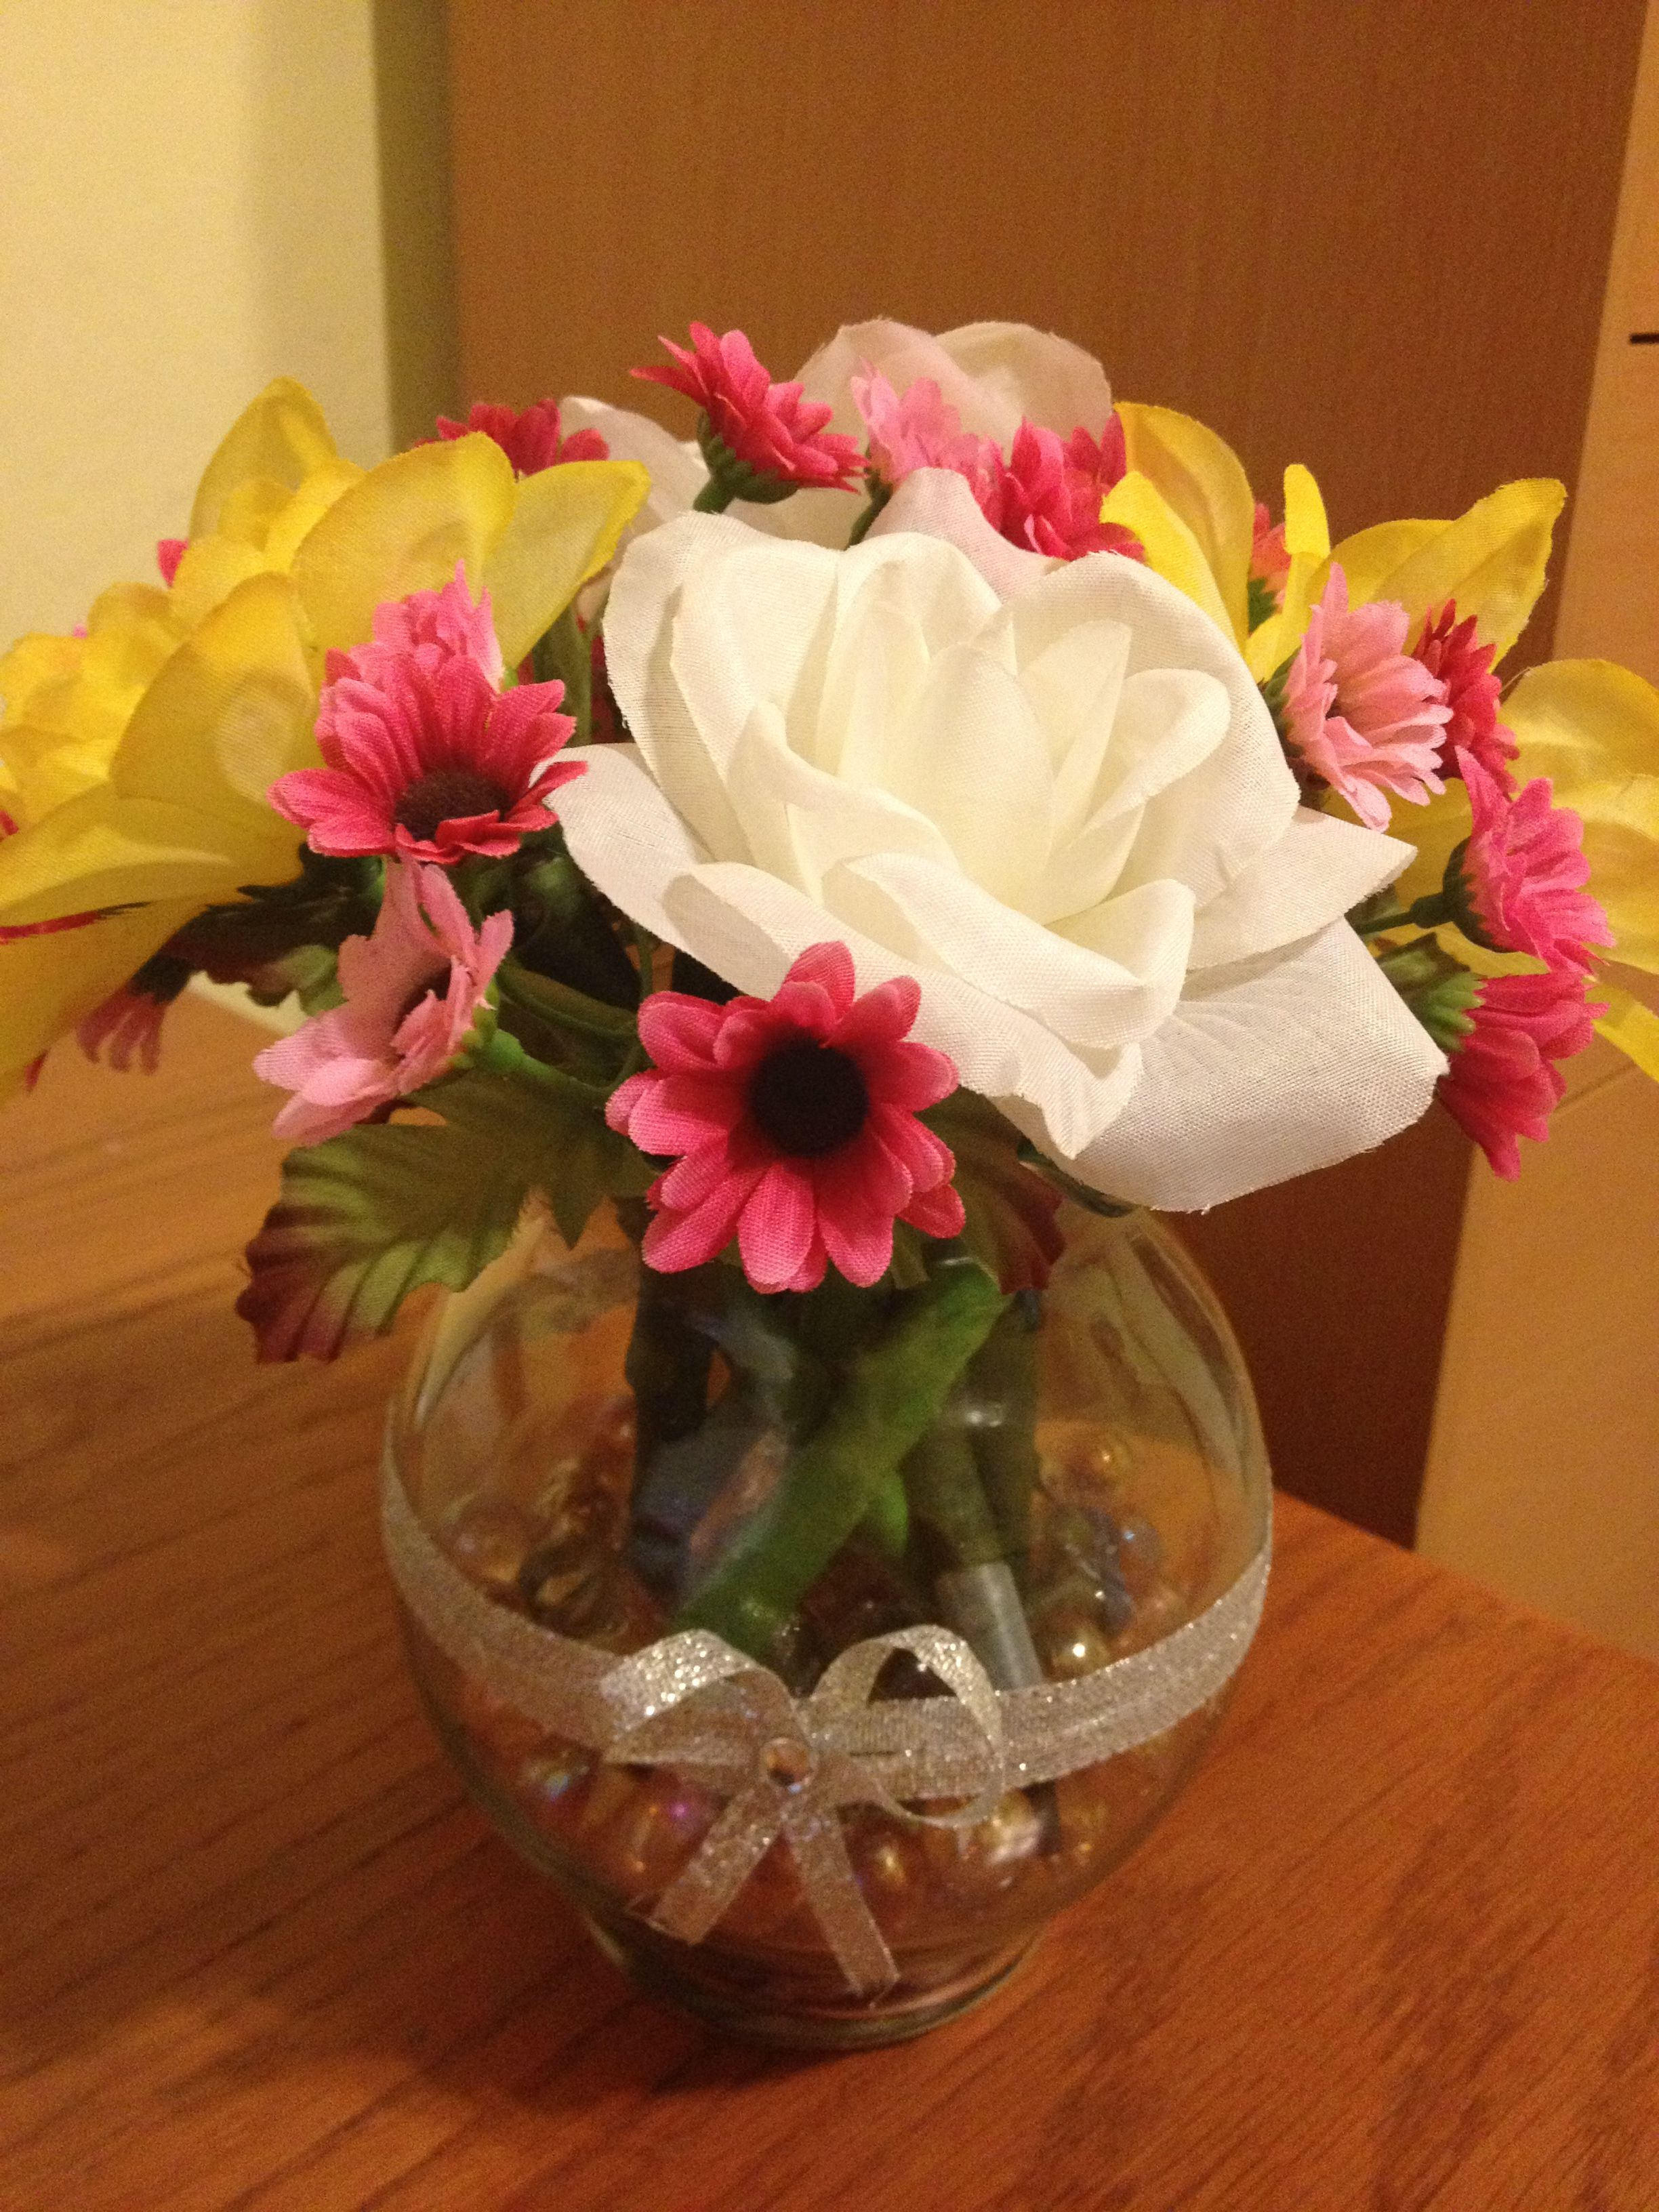 DIY flower pen bouquet | My Crafts | Pinterest | Flower pens, Diy ...